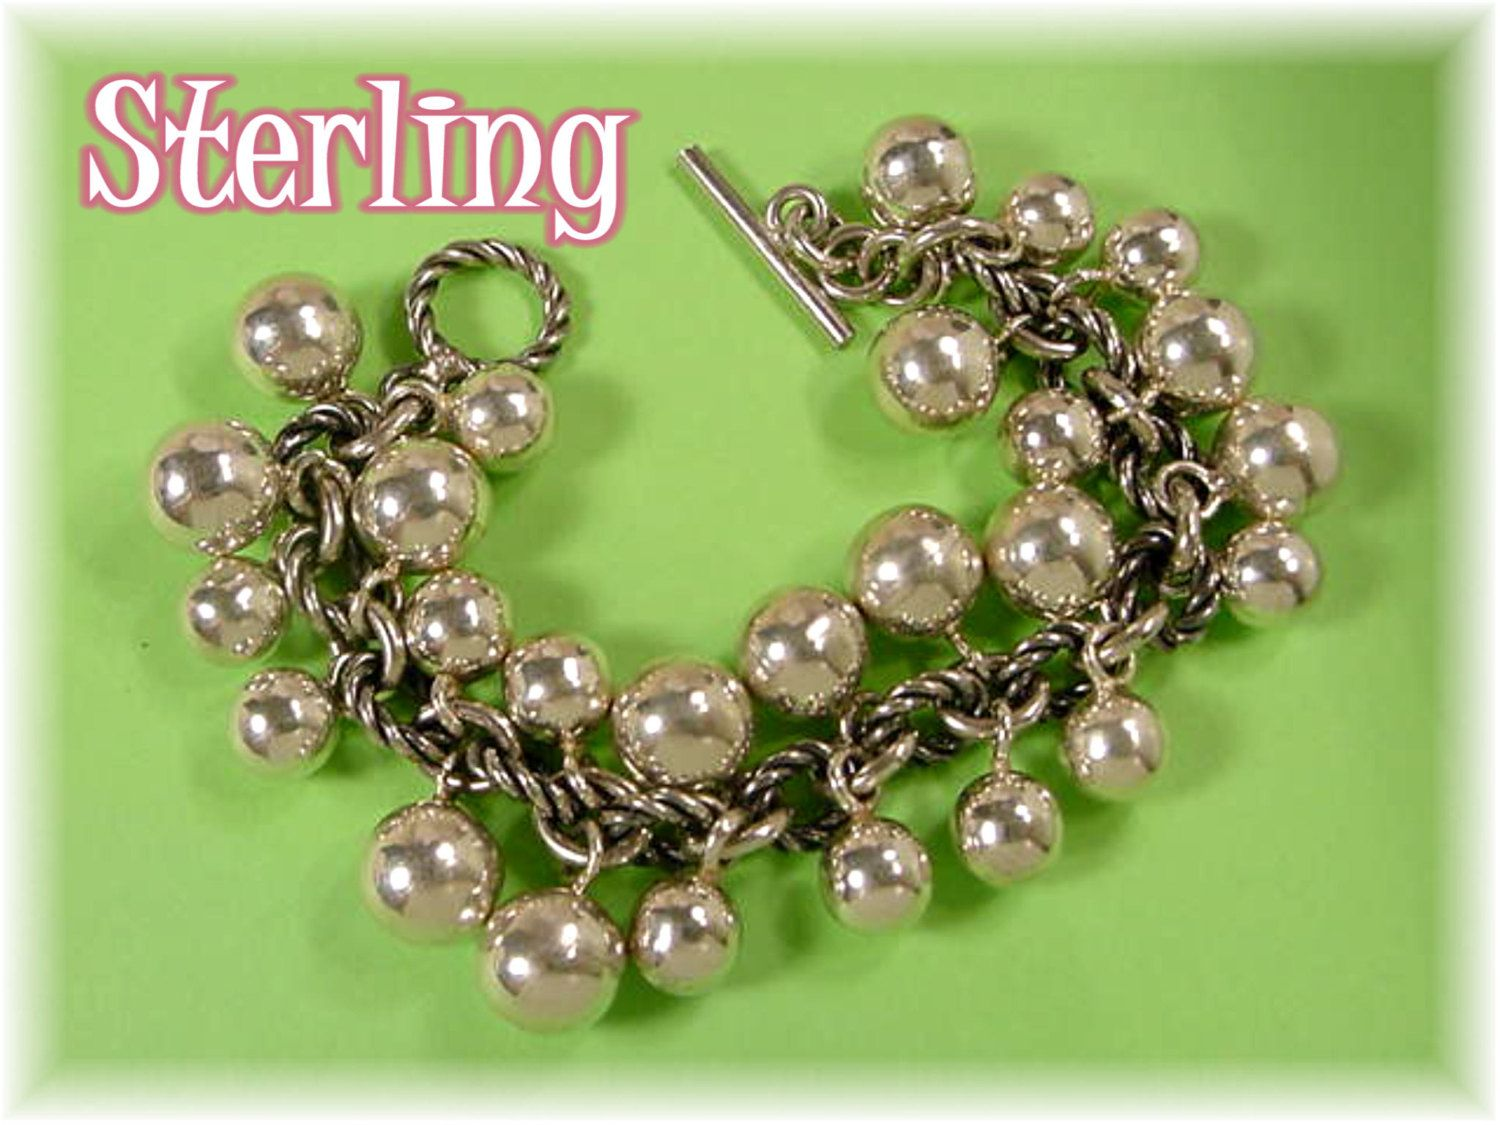 Sterling Silver - Dangling Balls Chunky Chain Charm Bracelet - 3 + Ozs - Manhattan Nights Bling - Boho OOAK One of A Kind - FREE SHIPPING